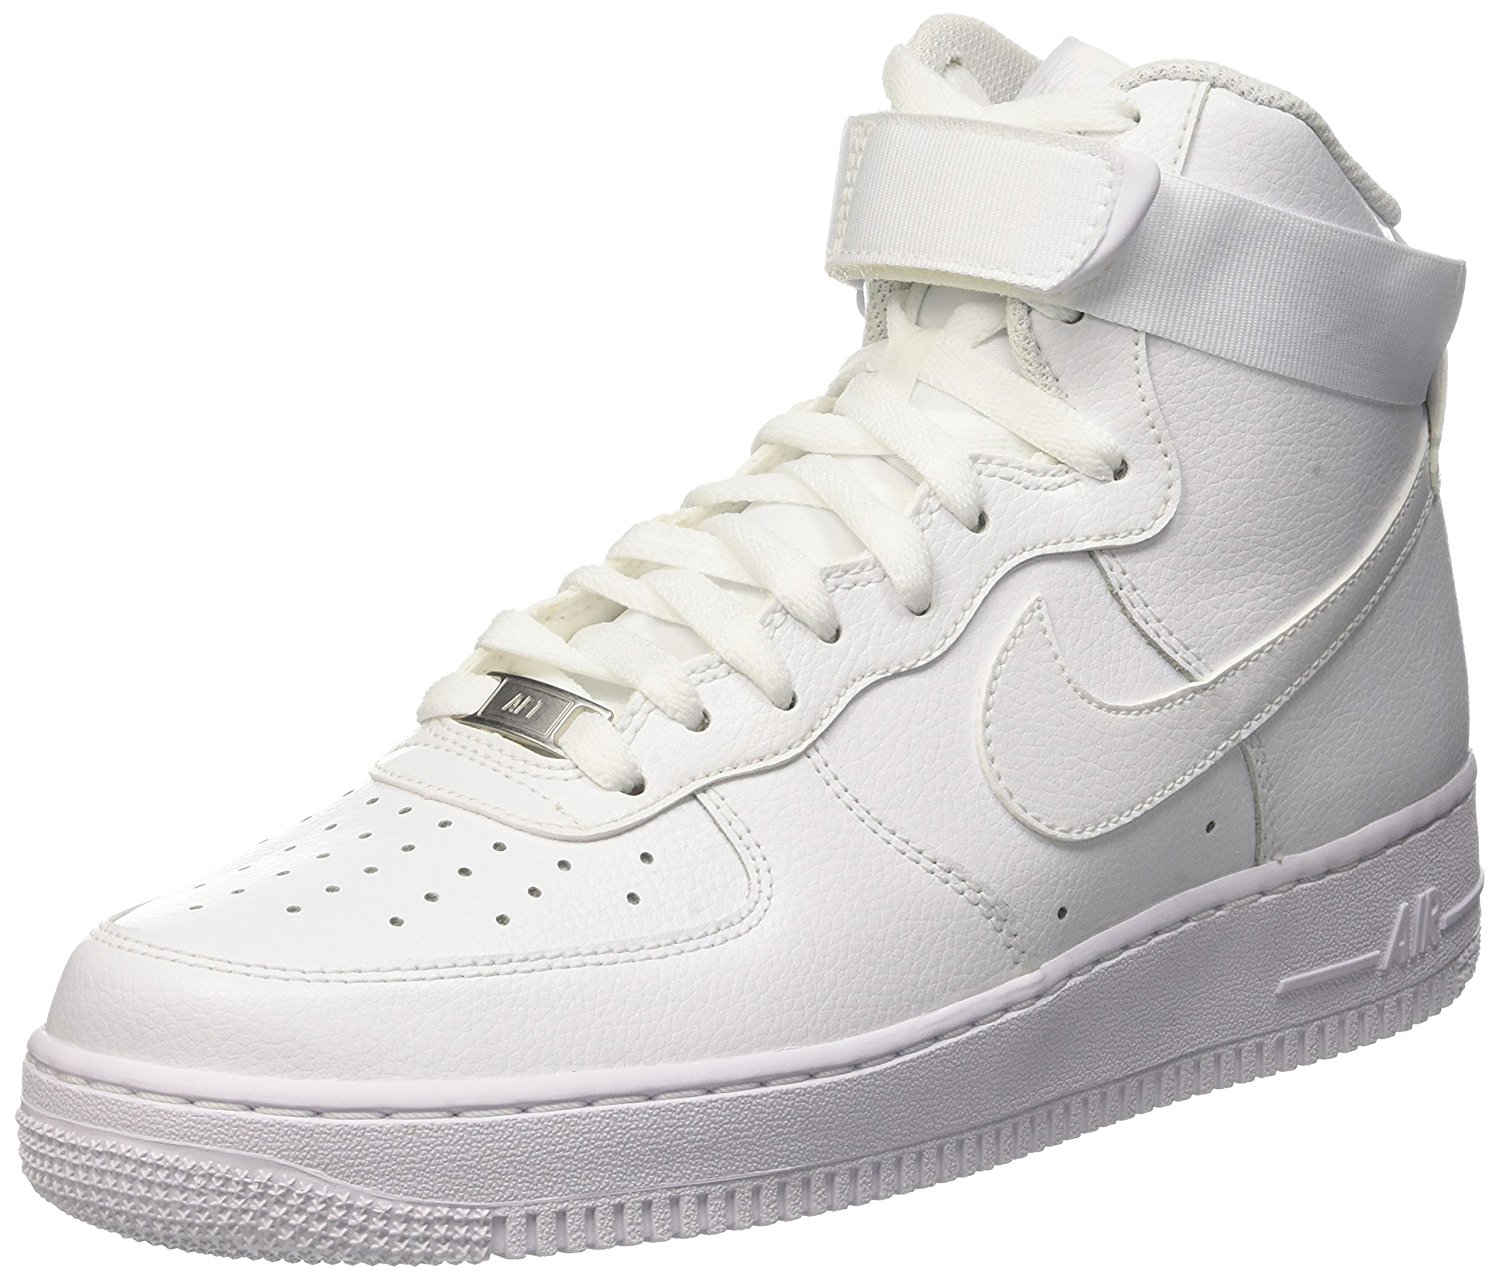 Nike Air Force 1 High Top Angled View